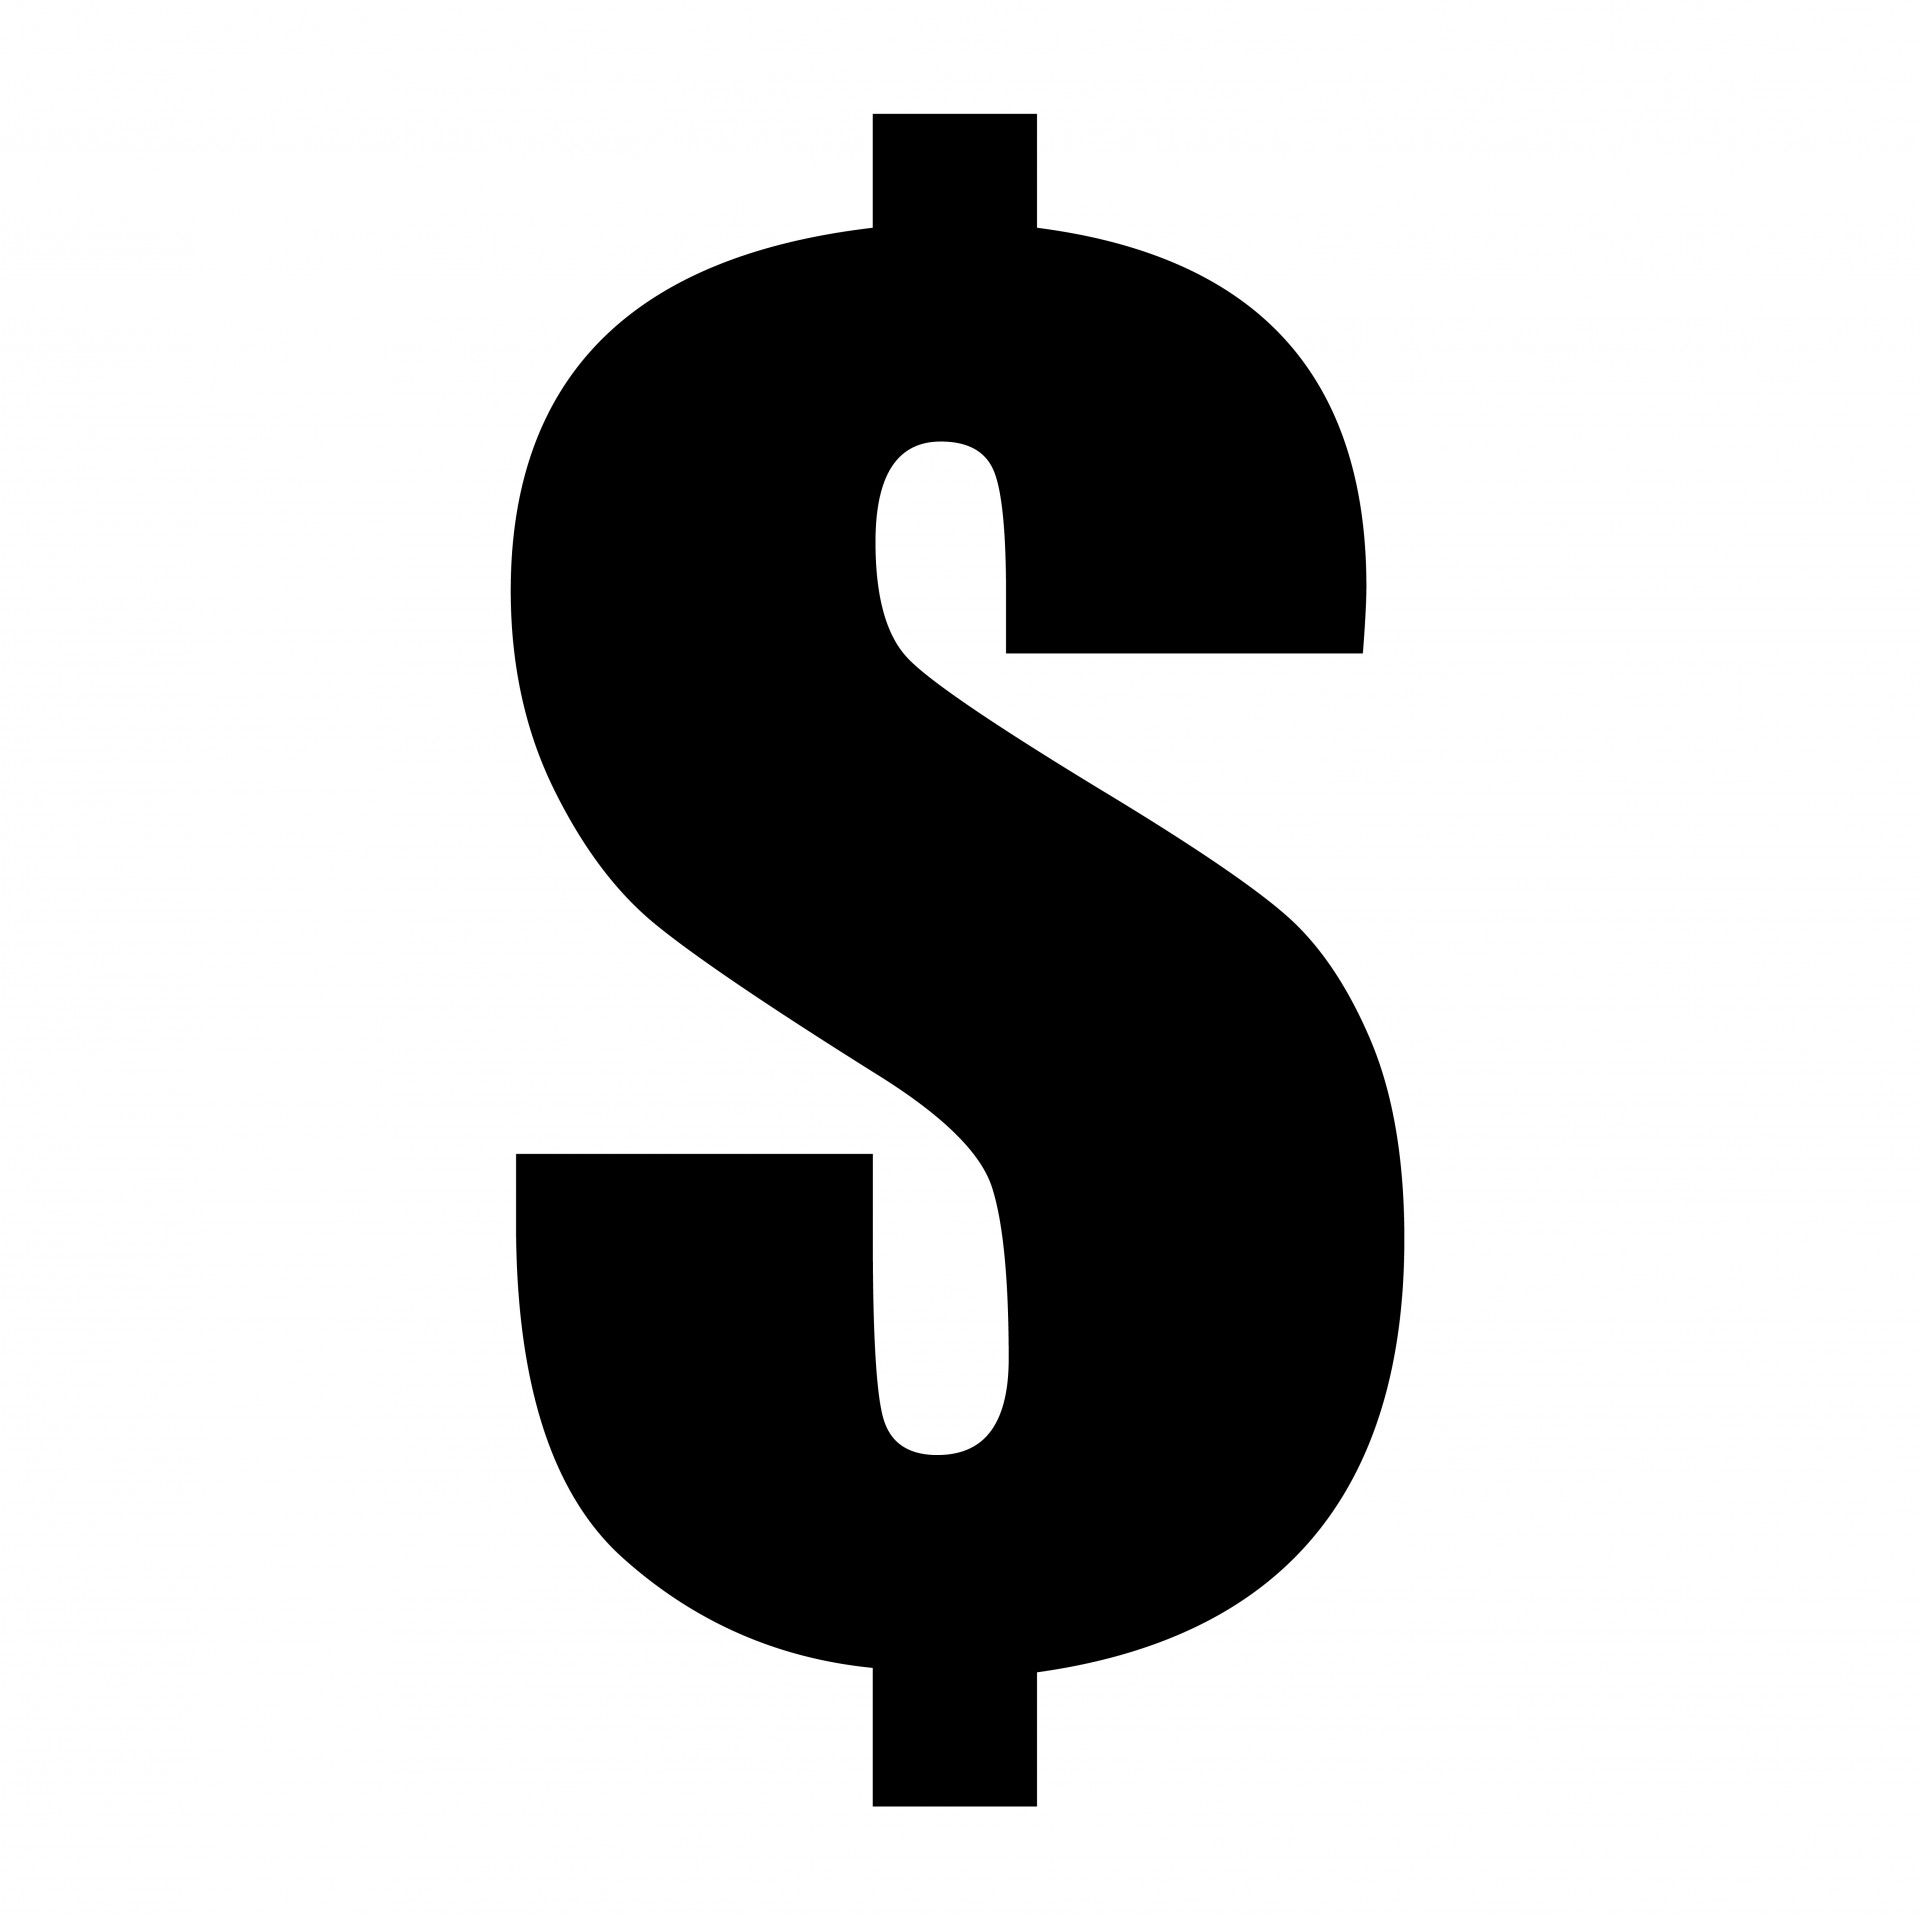 Dollar sign graphic